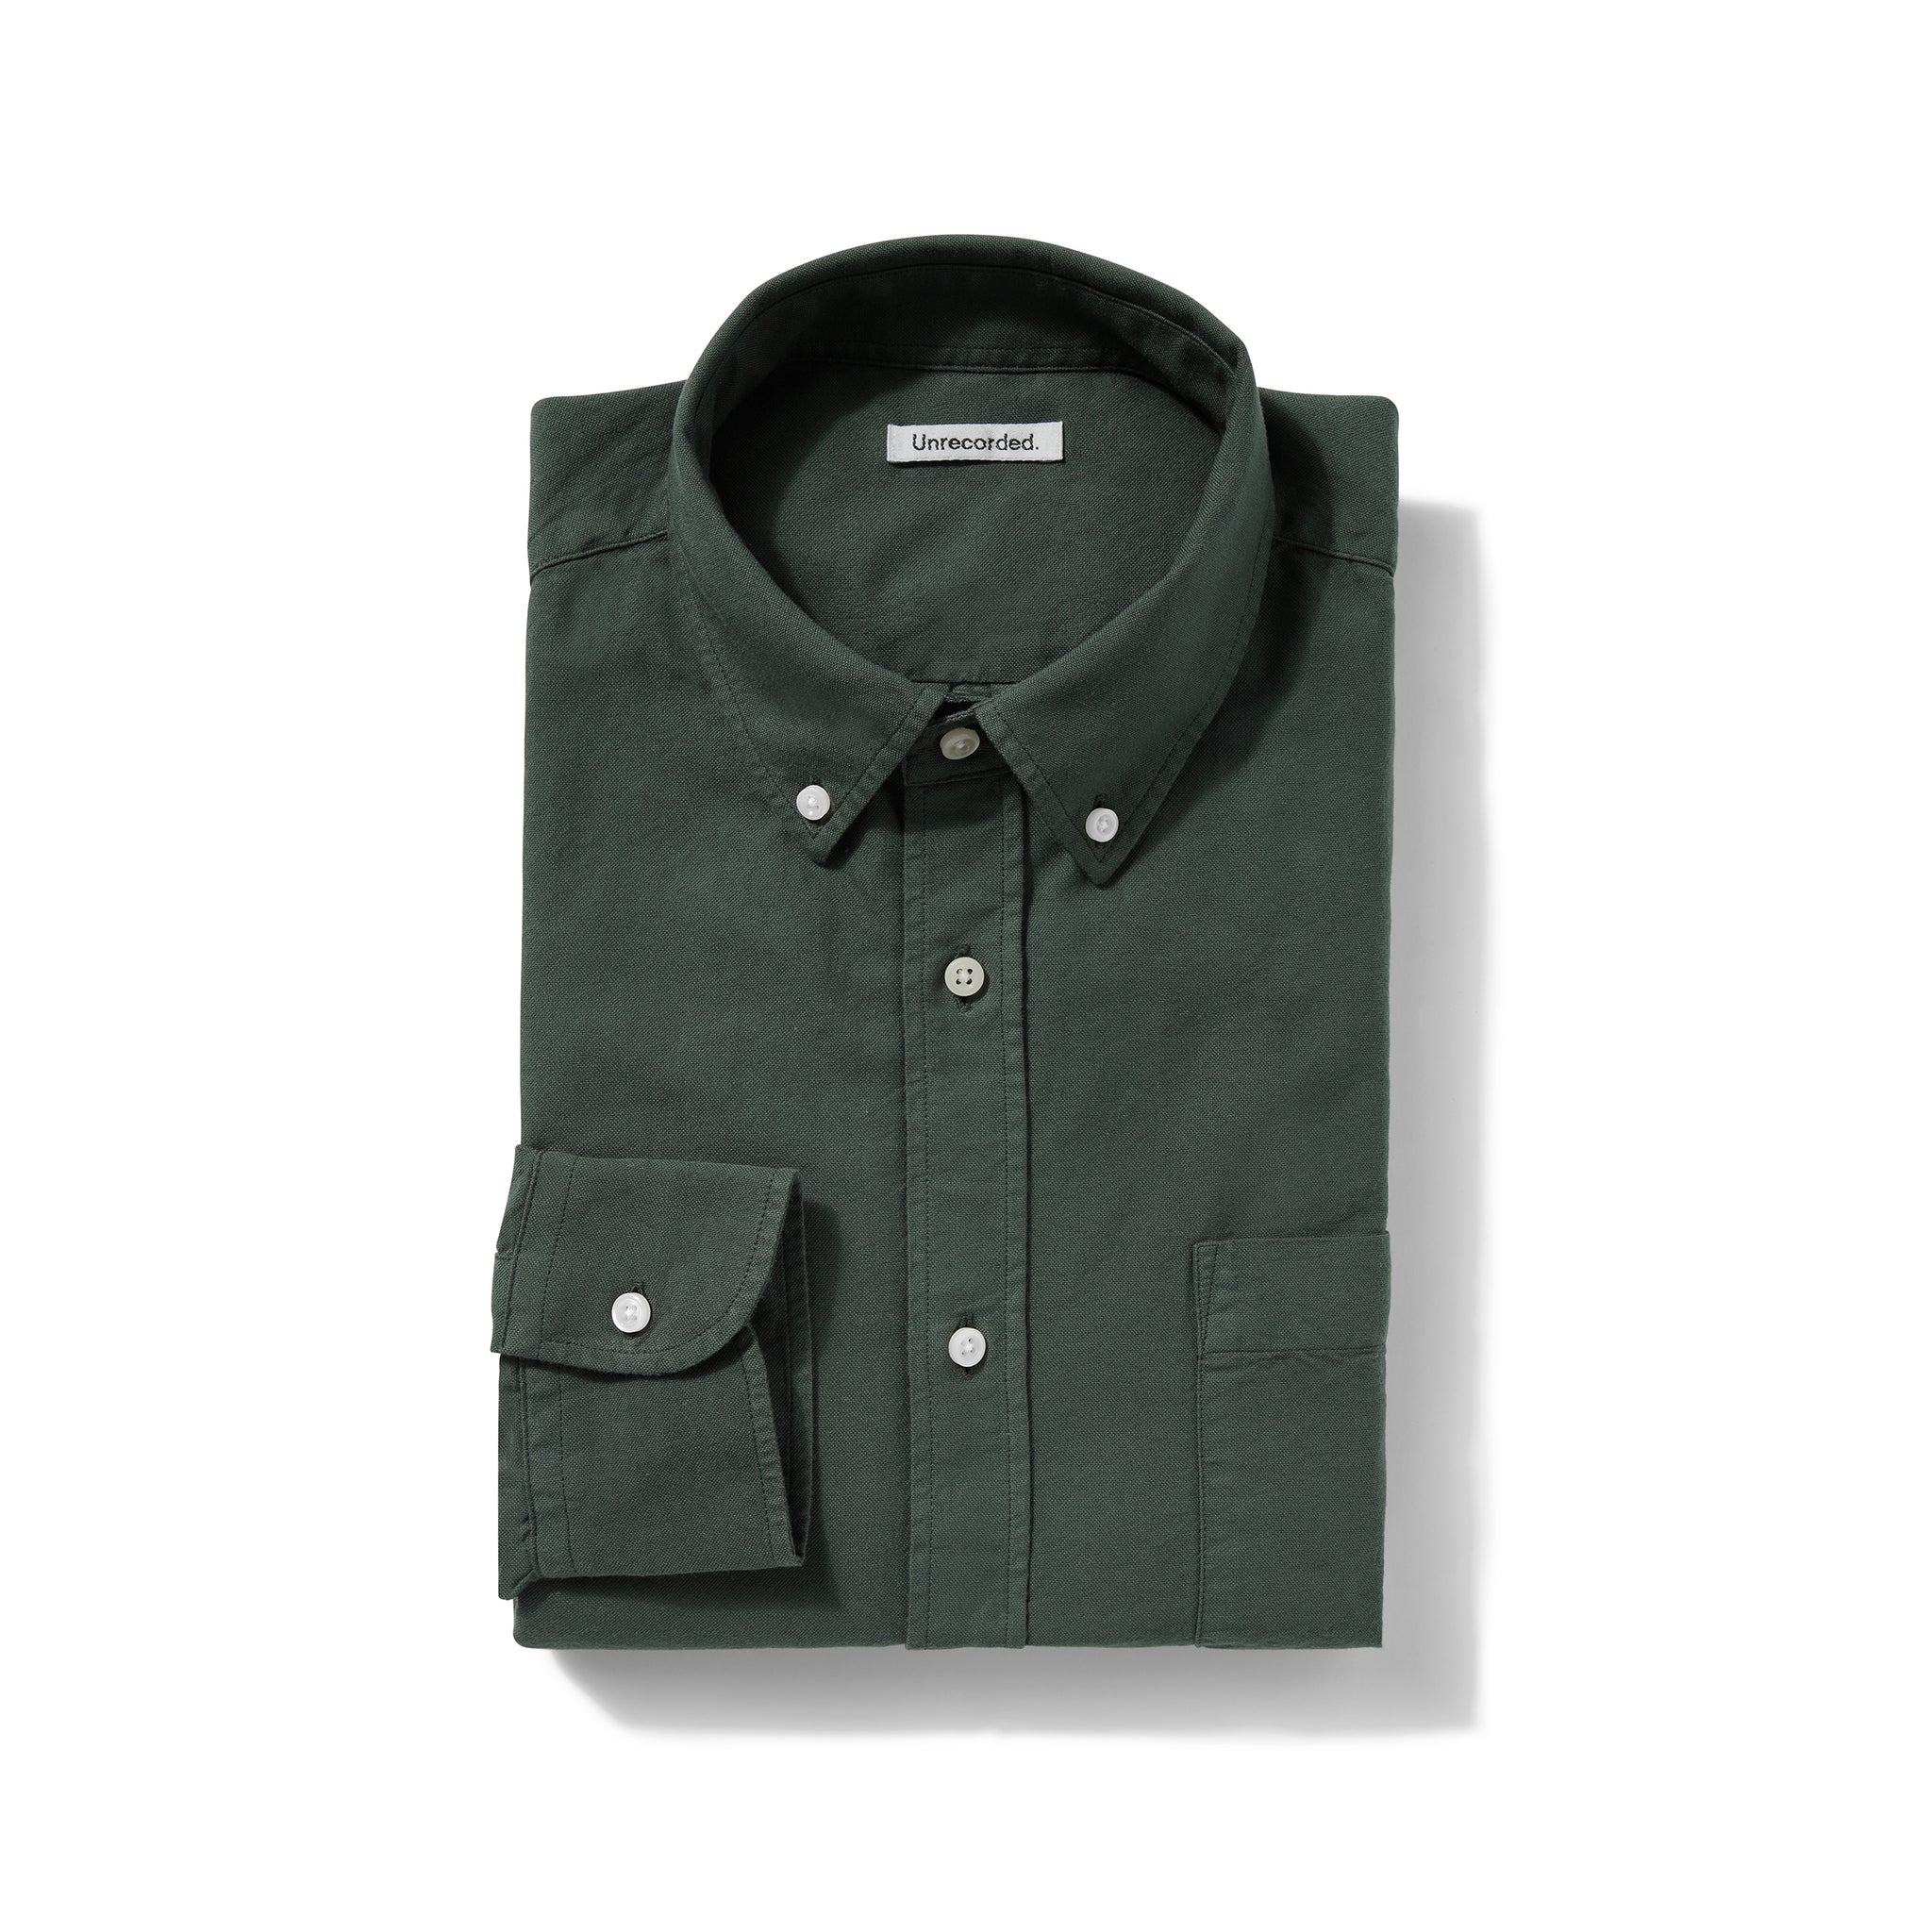 Oxford Shirt in Green made from organic cotton